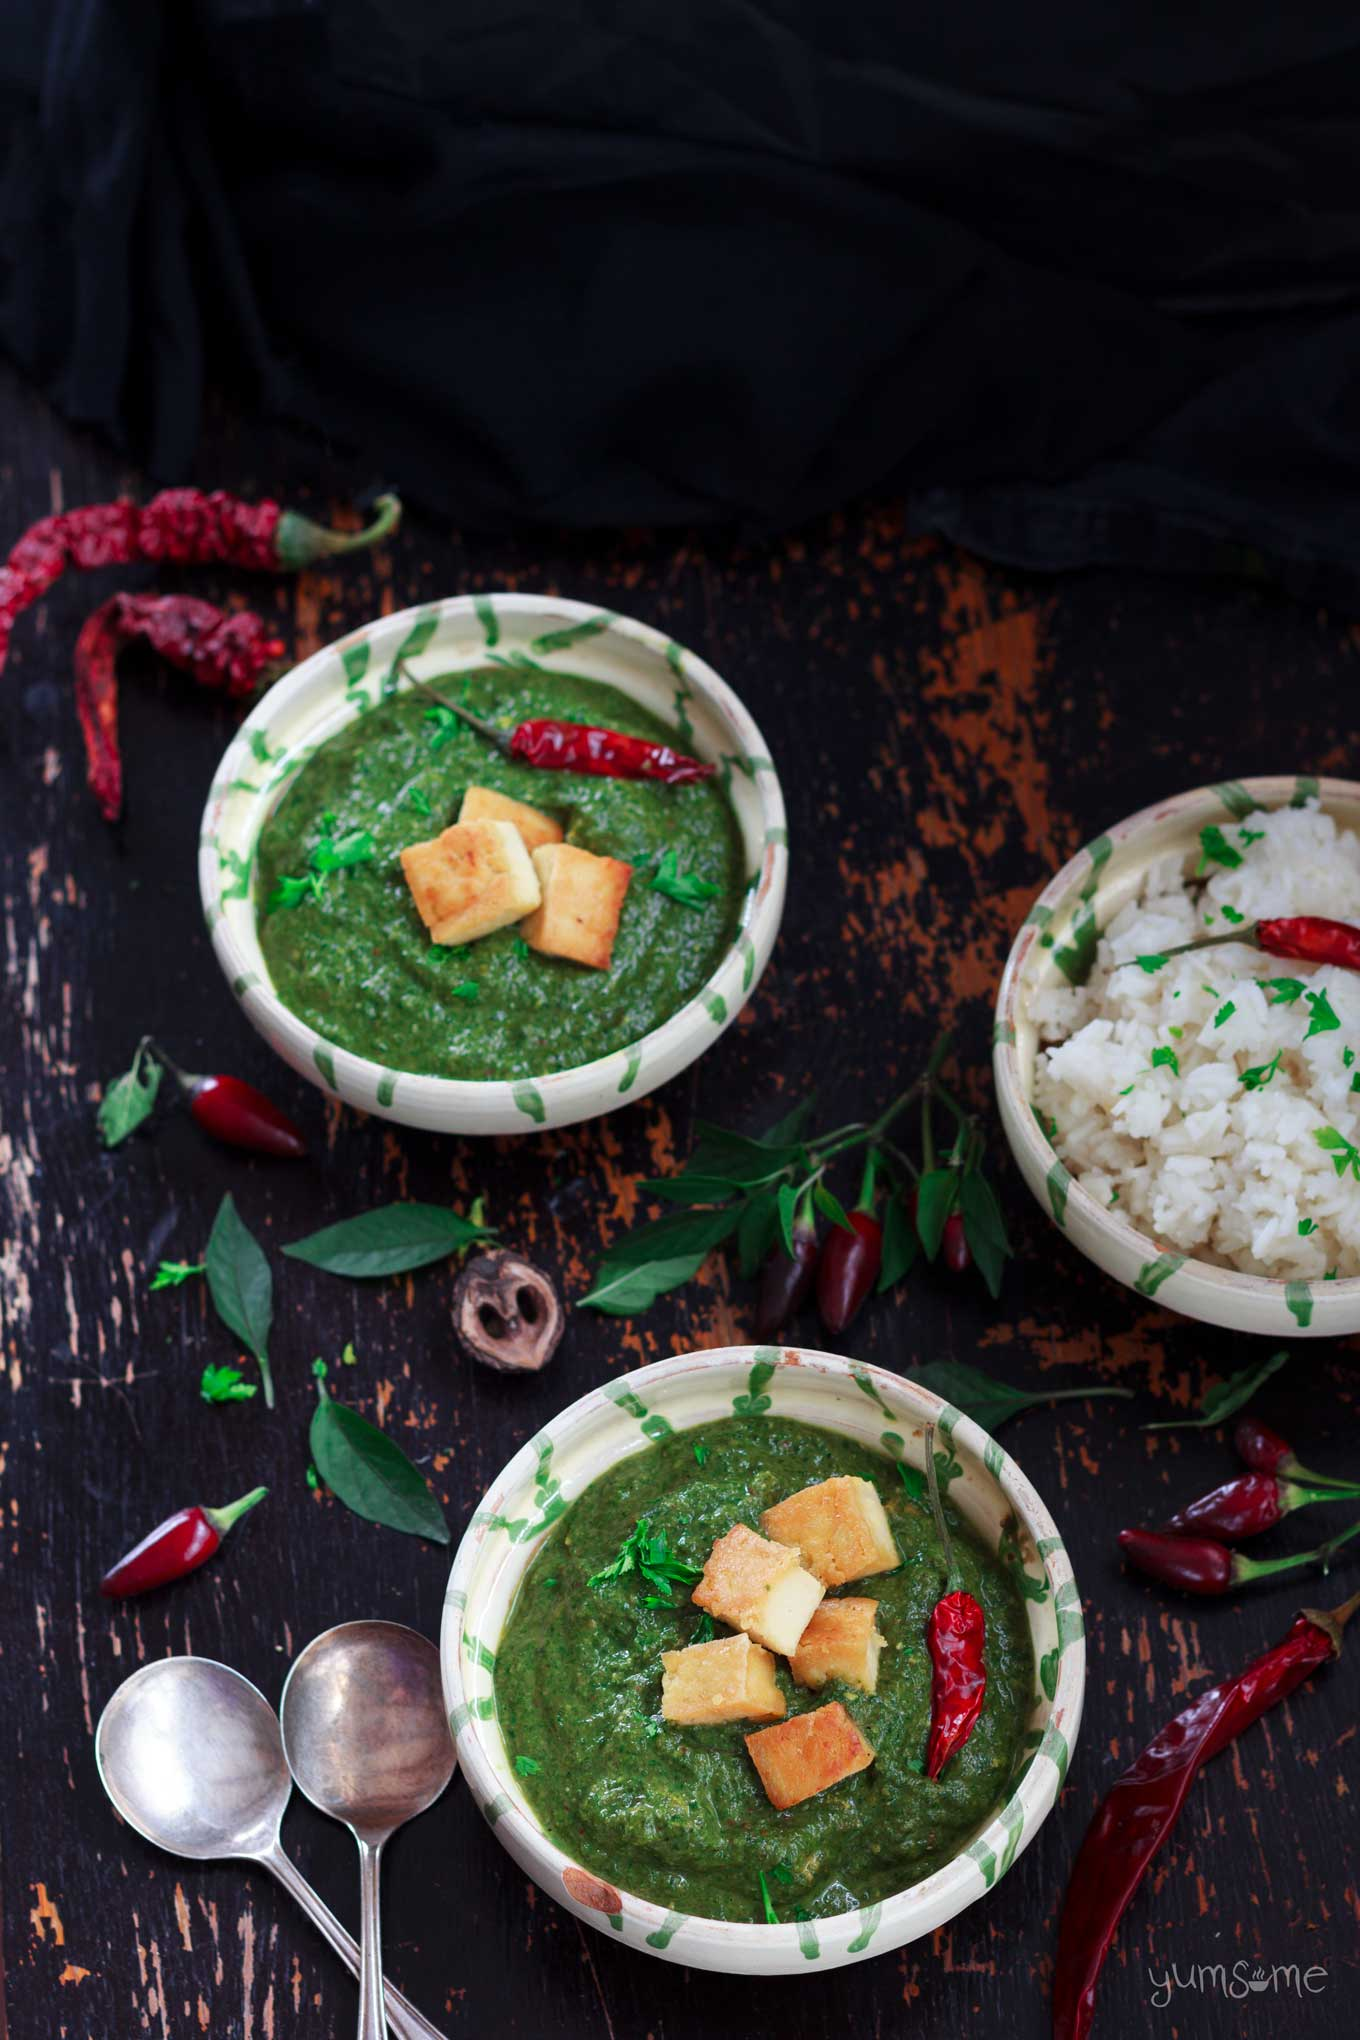 Overhead shot of two bowls of vegan palak paneer and some rice, surrounded by chillies on a dark background.